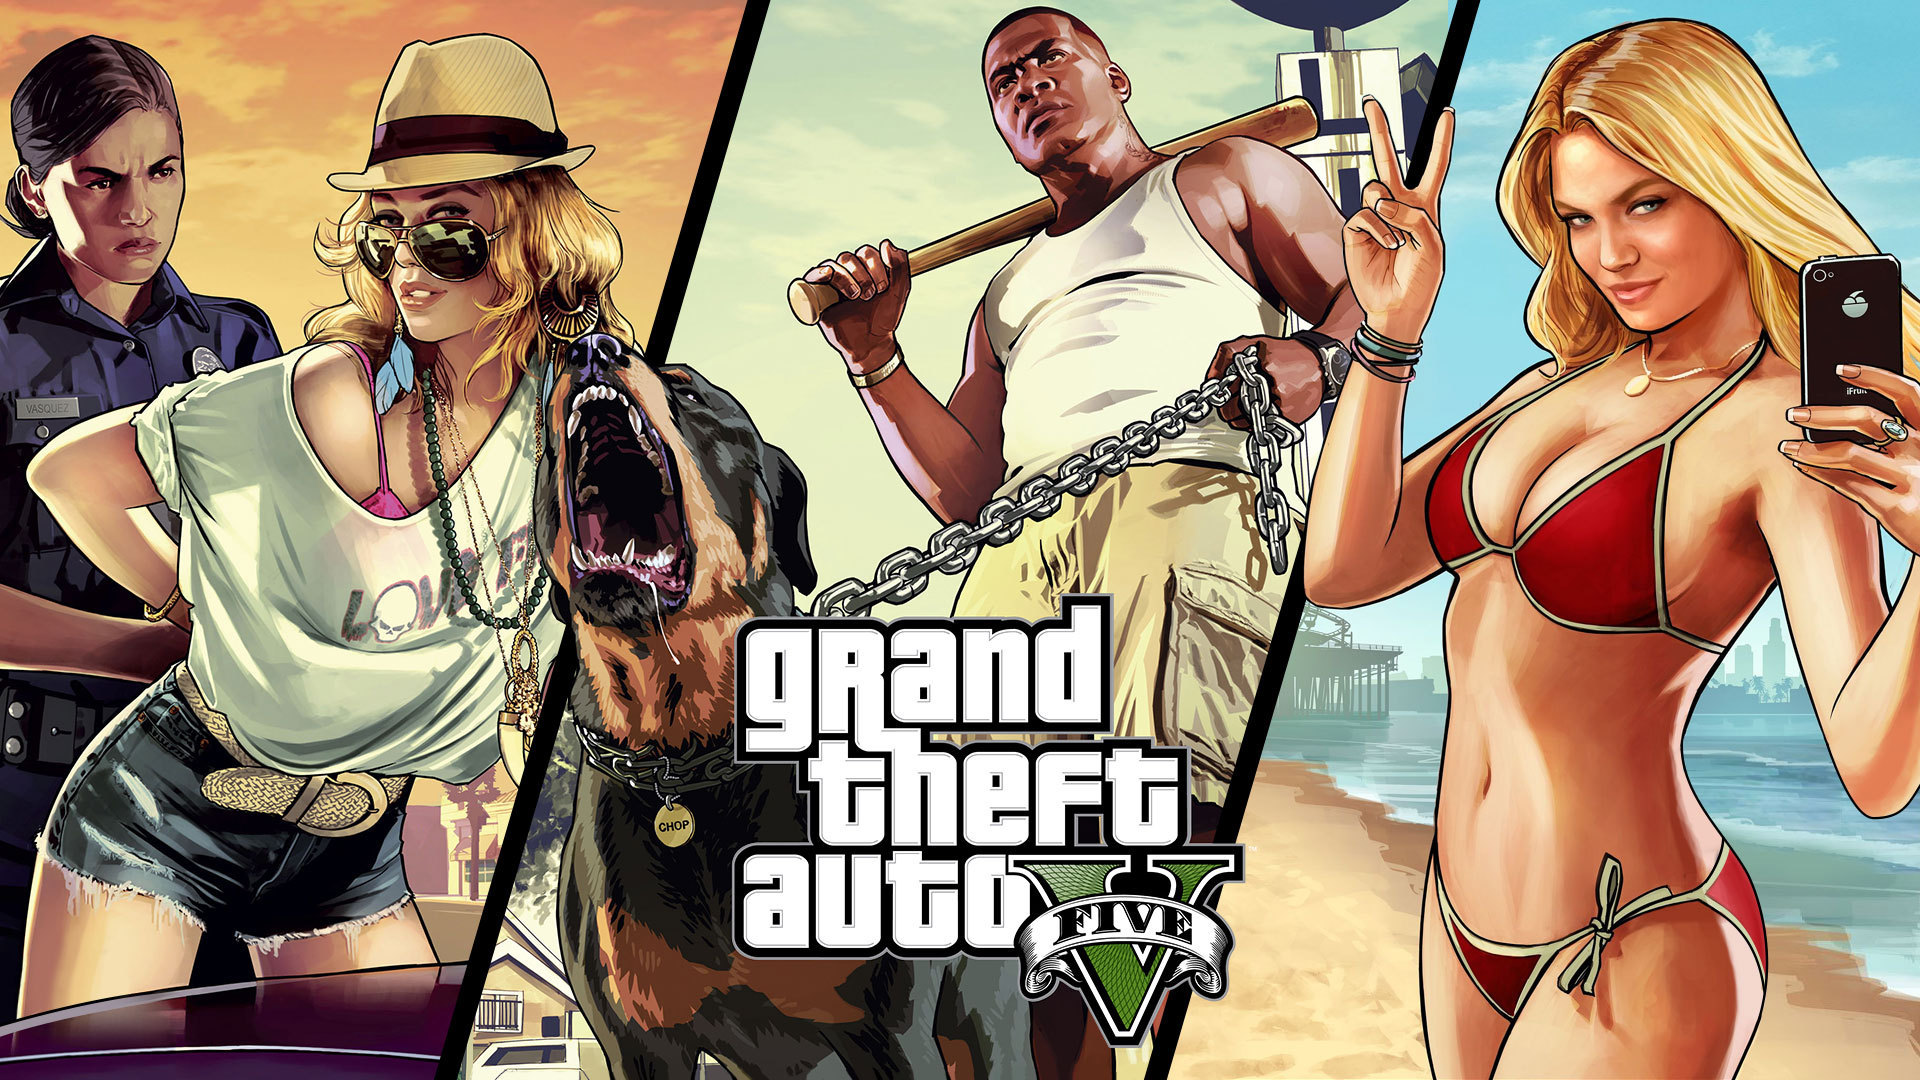 gta v descargar Grand Theft Auto V se filtra en torrent para consolas Xbox 360 y PlayStation 3